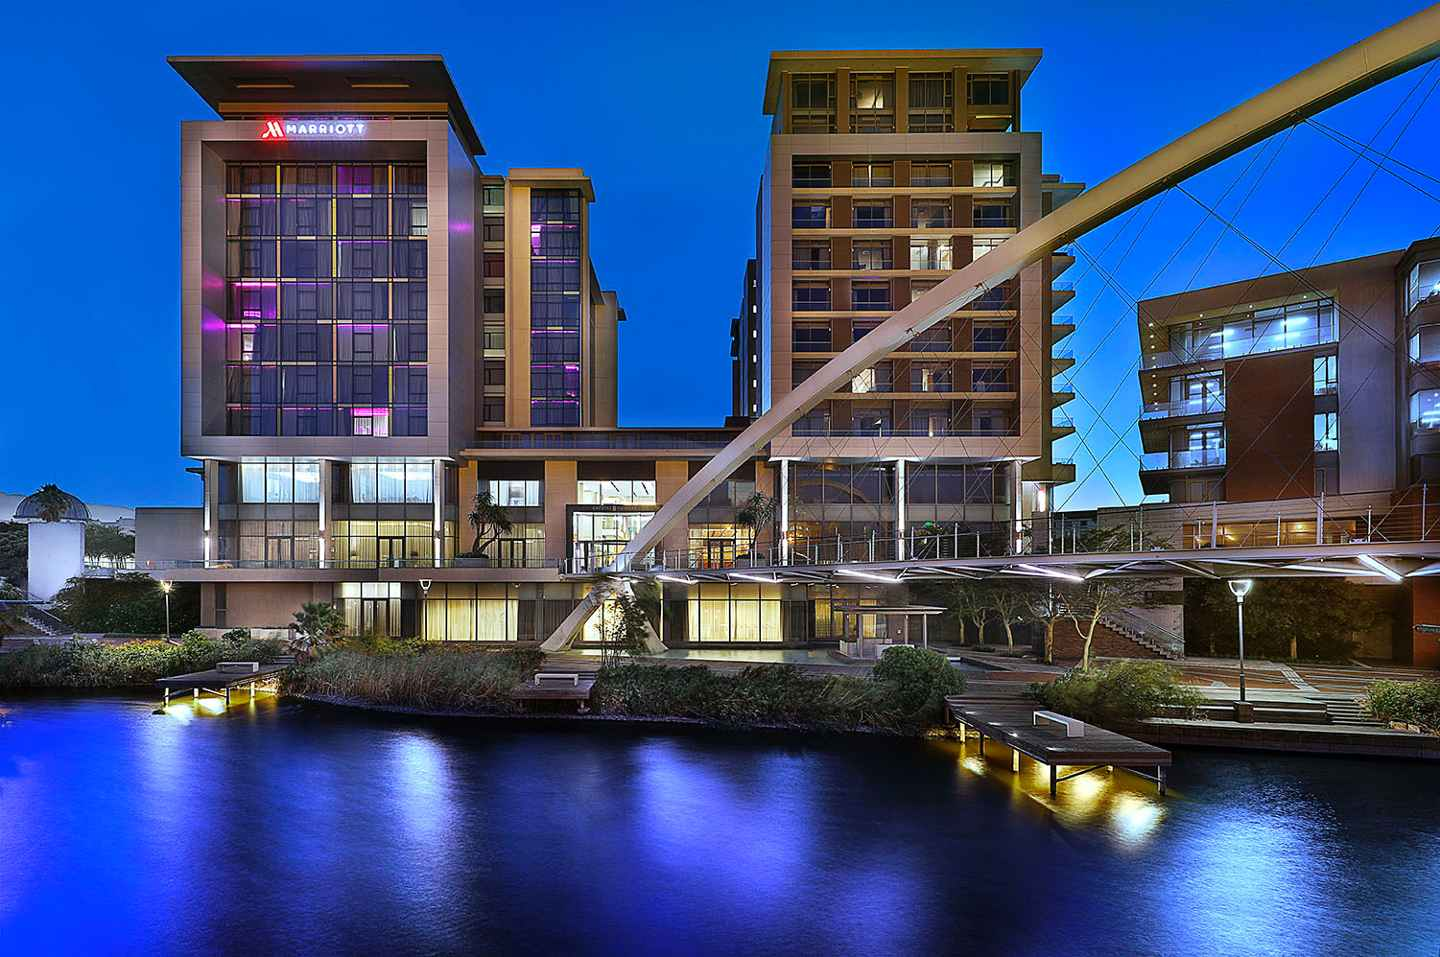 Cape Town Marriott Hotel Crystal Towers Cape Town South